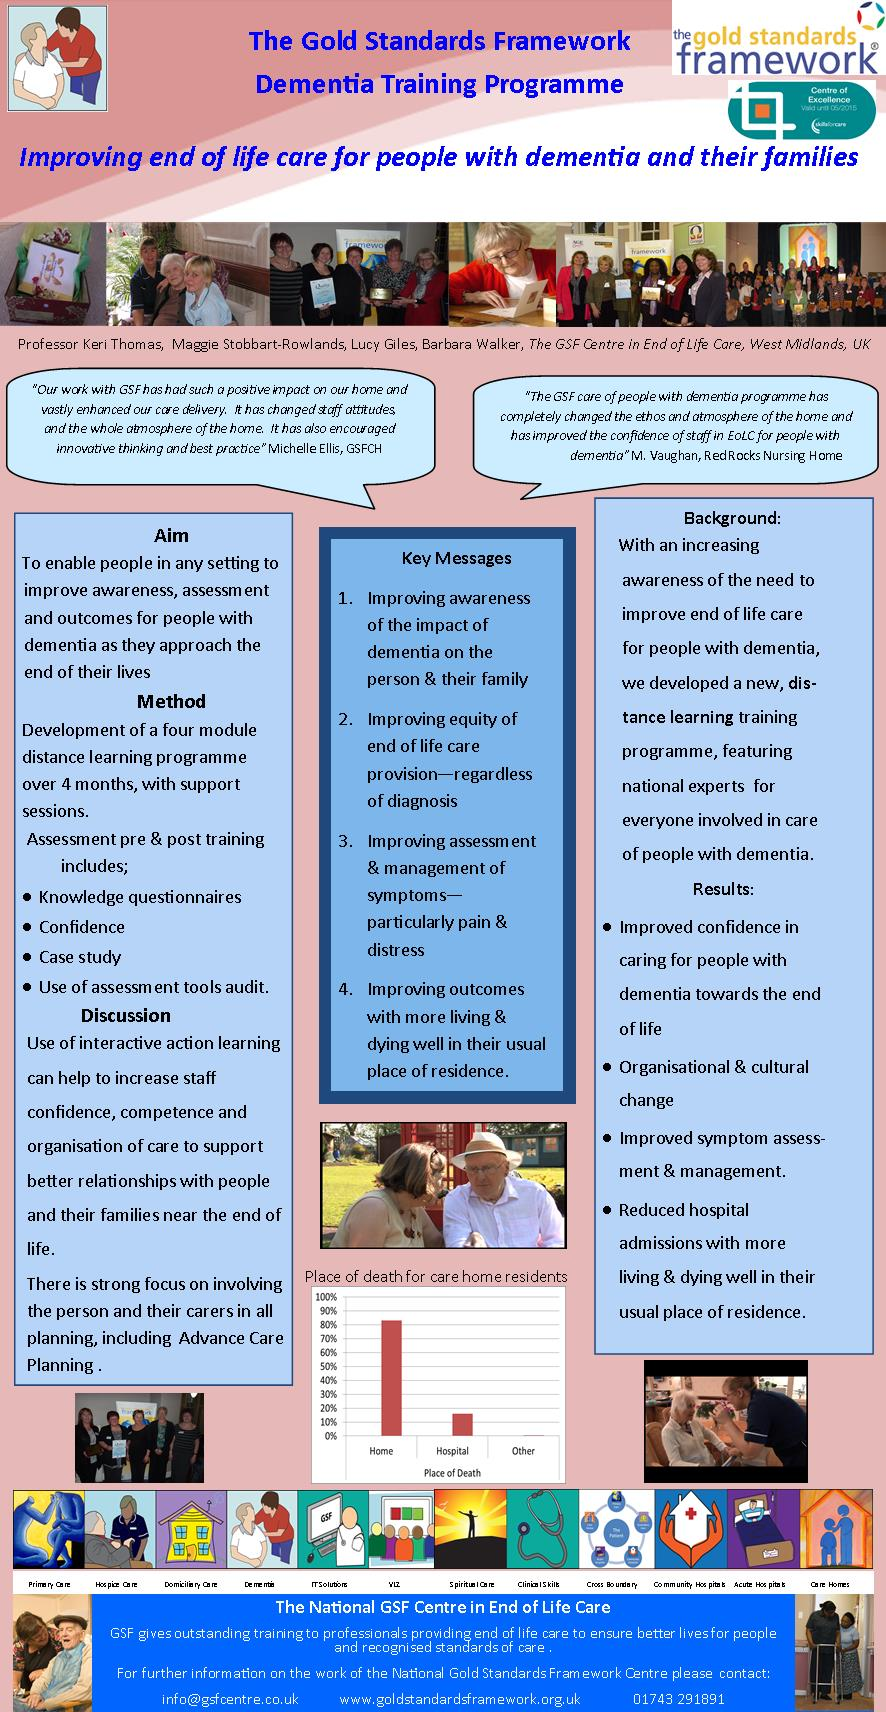 relationship centered model of care in dementia and the six senses framework essay